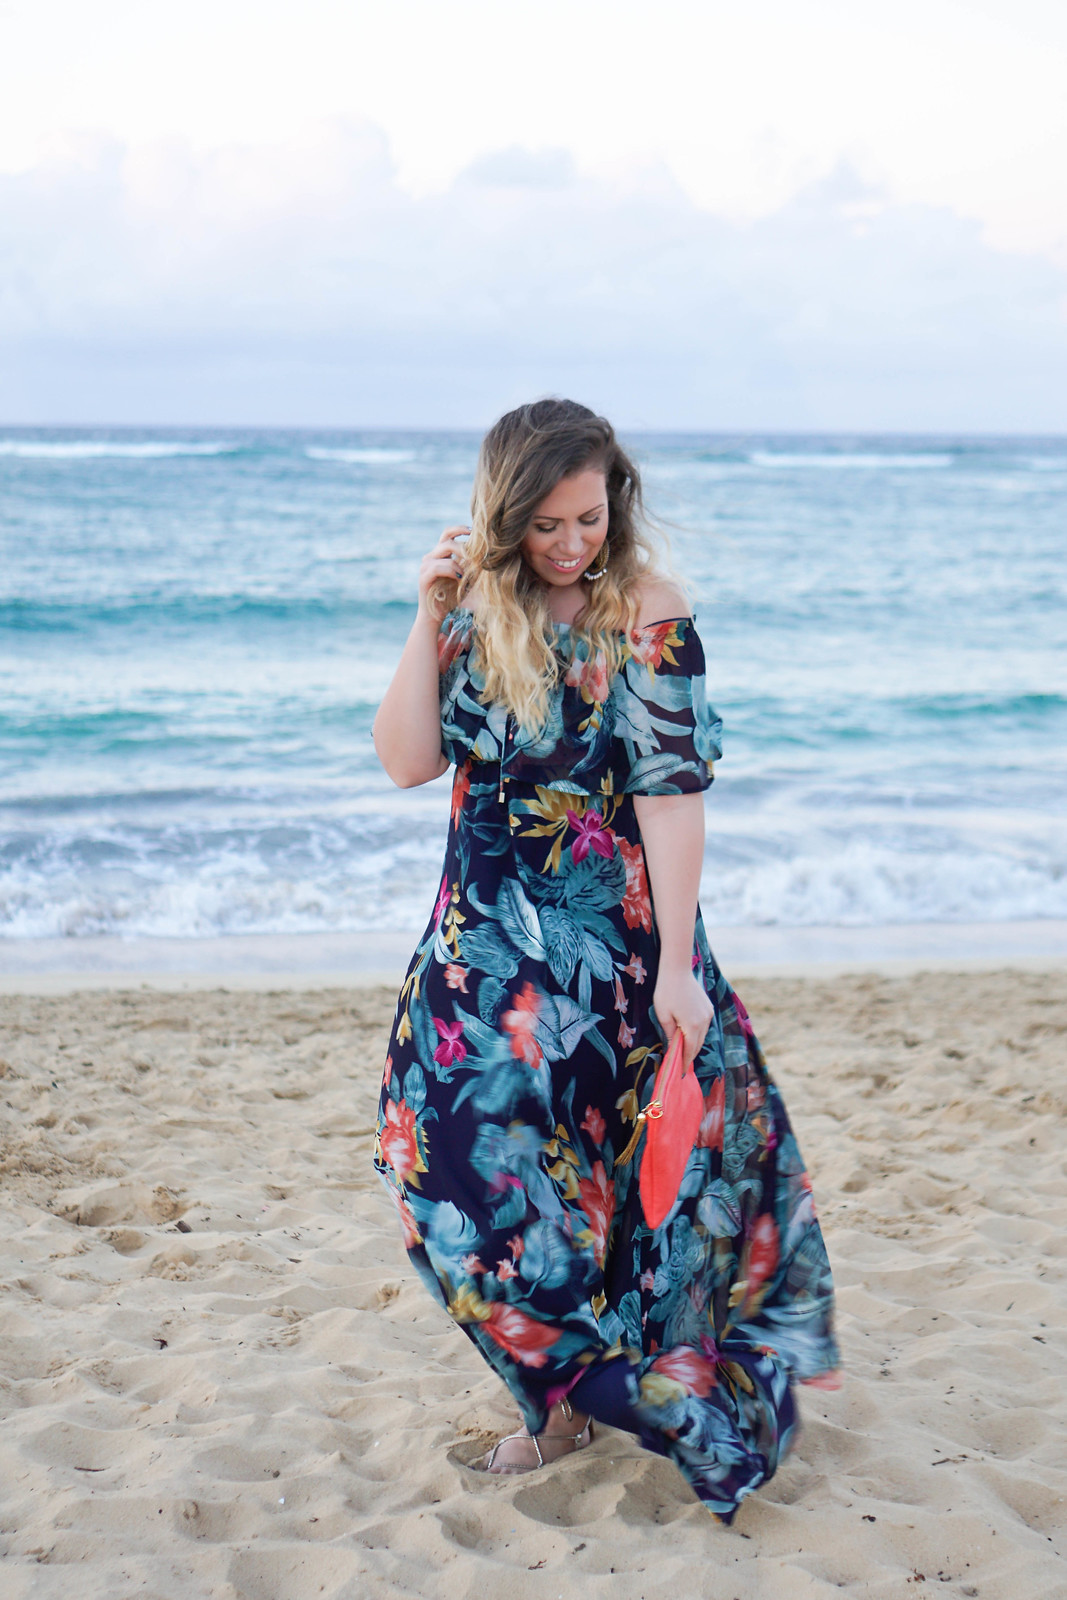 My Favorite Spring Trends Lulu's Navy Floral Print Off Shoulder Maxi Dress Punta Cana Dominican Republic Beach Vacation Outfit